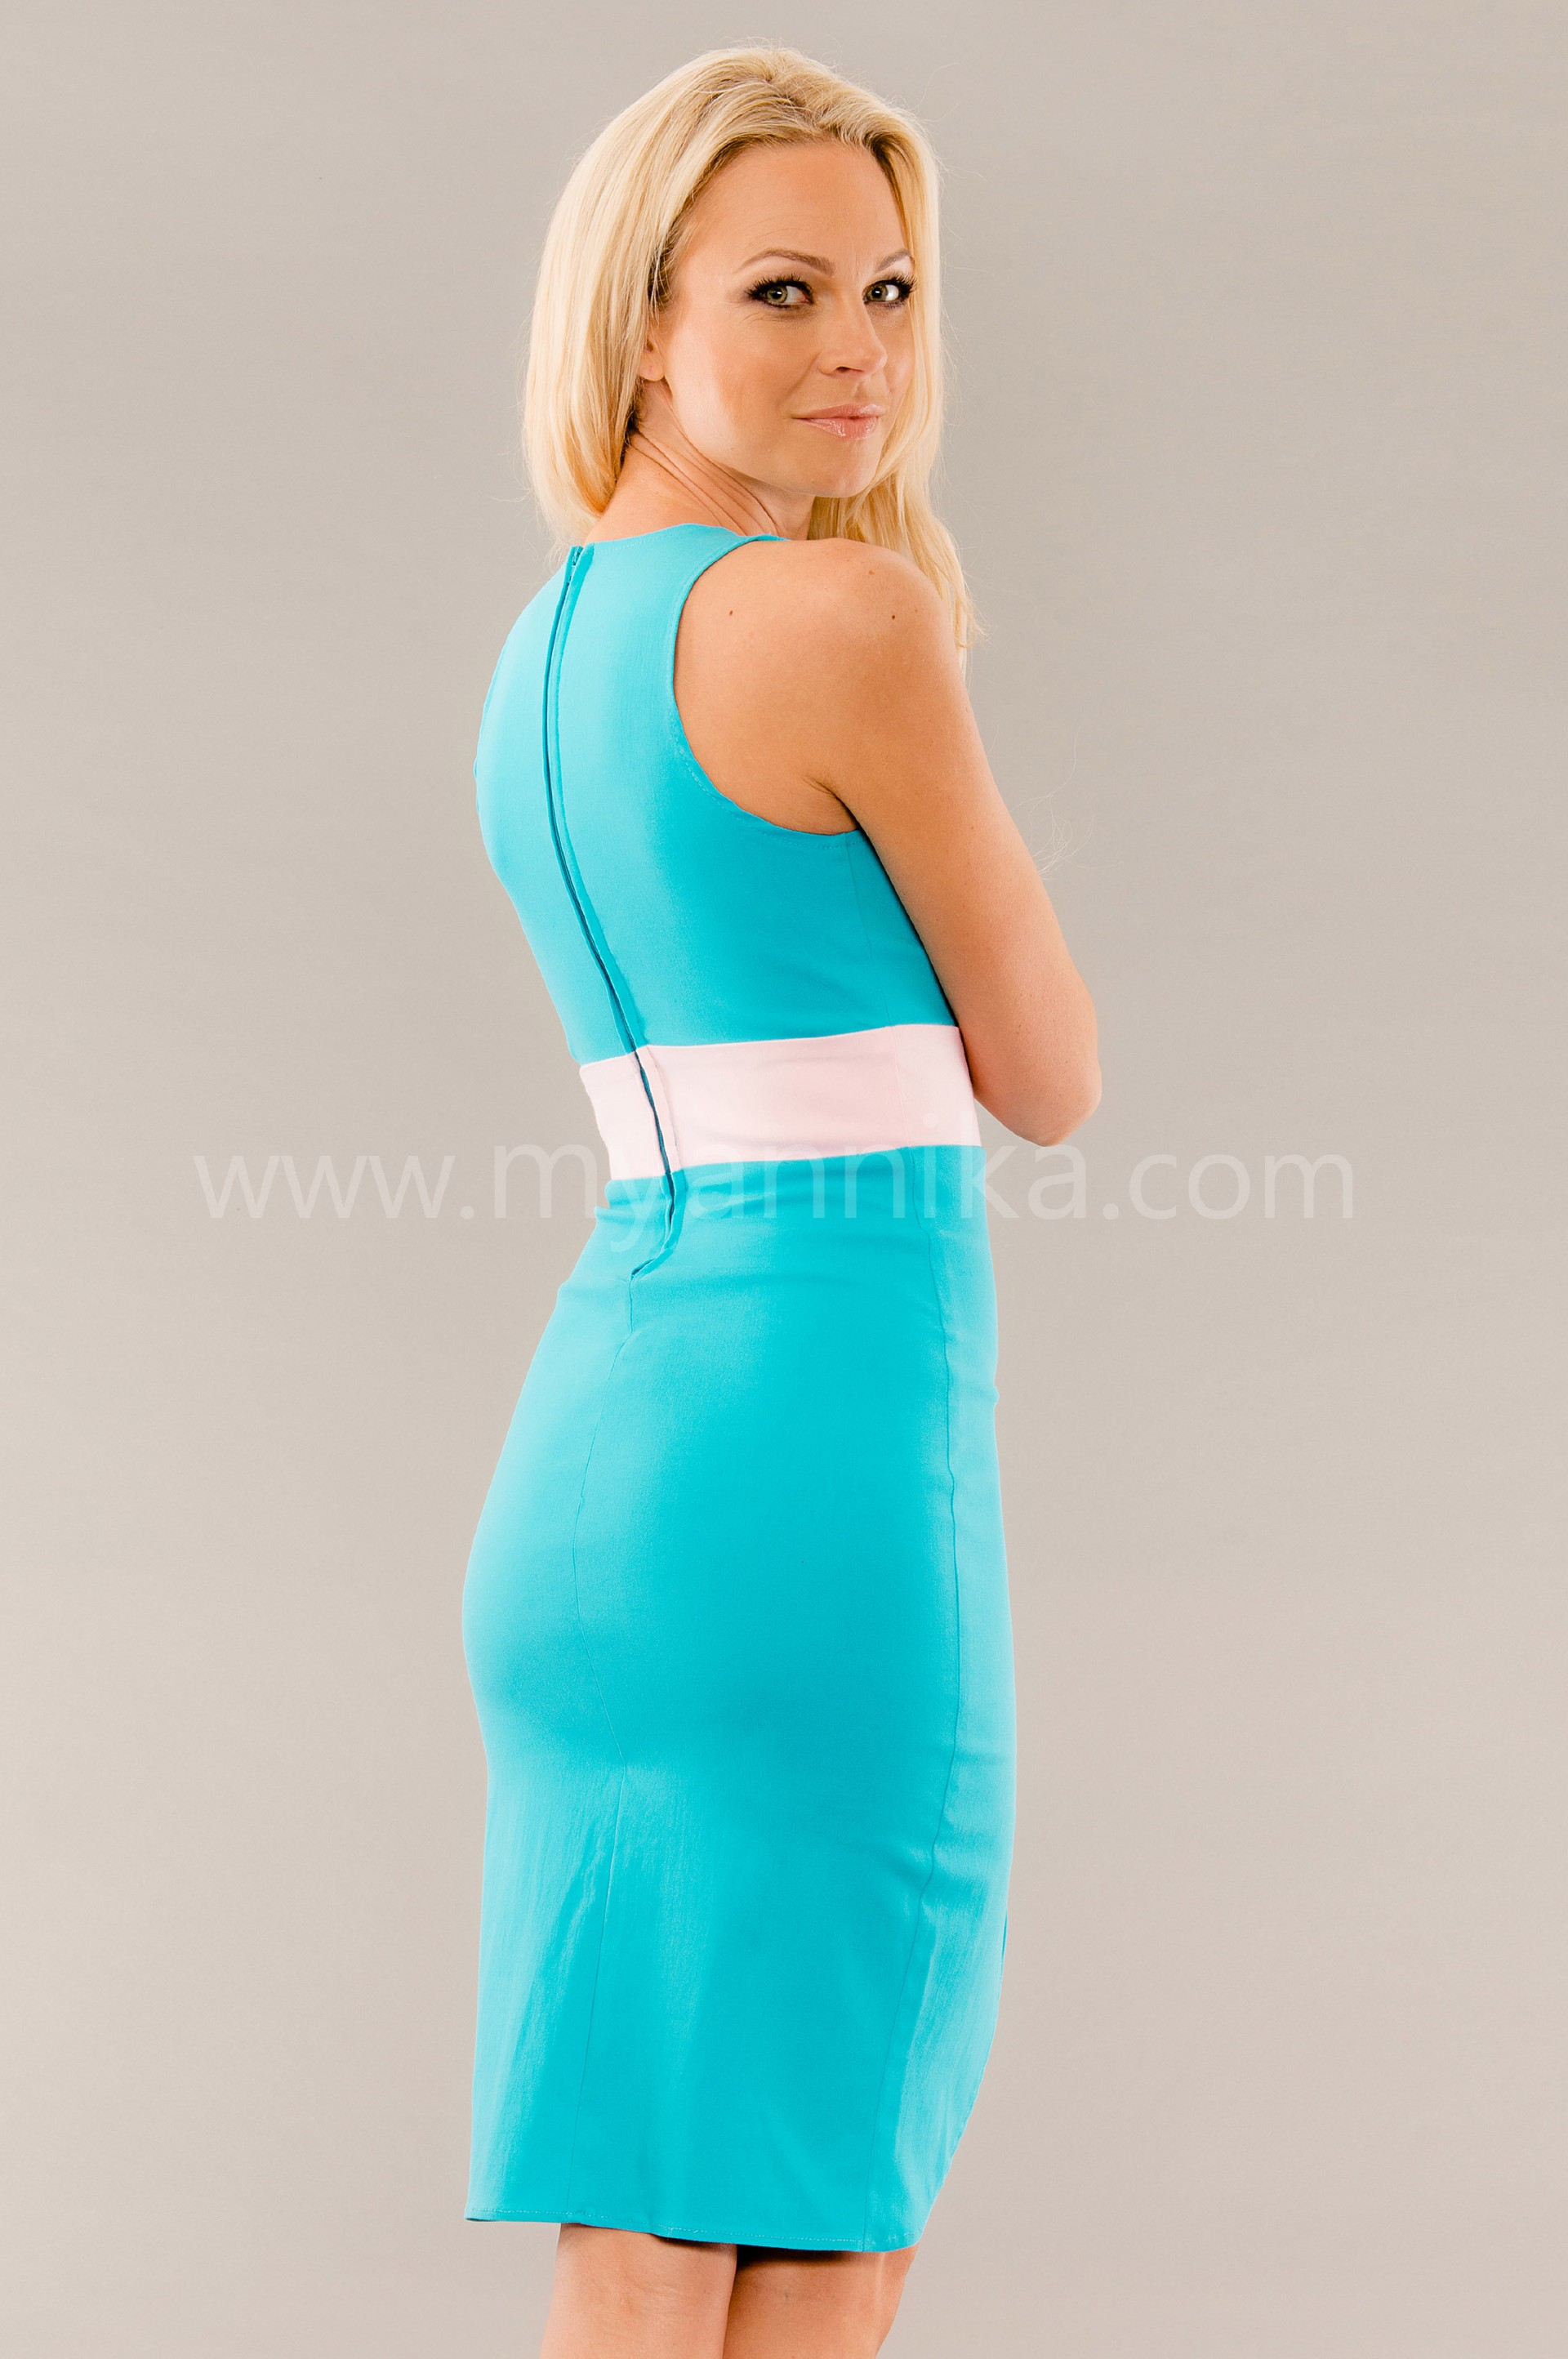 Taylor - Turquoise Pencil Dress with Front Slit Annika - Bandage ...